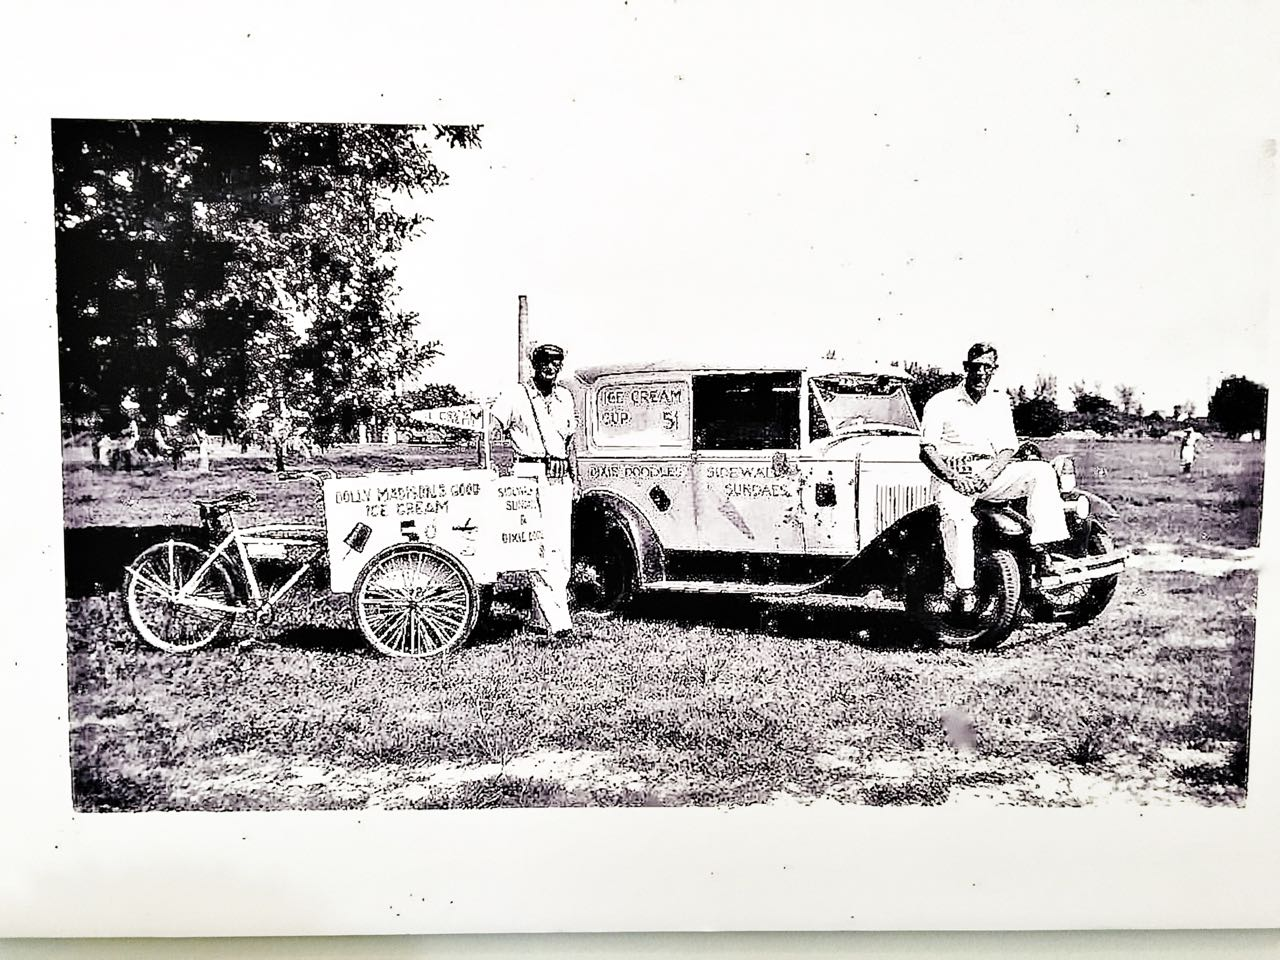 The engineer print wall decor is more special with personal photographs. This is a family photo from 1th 1930's.